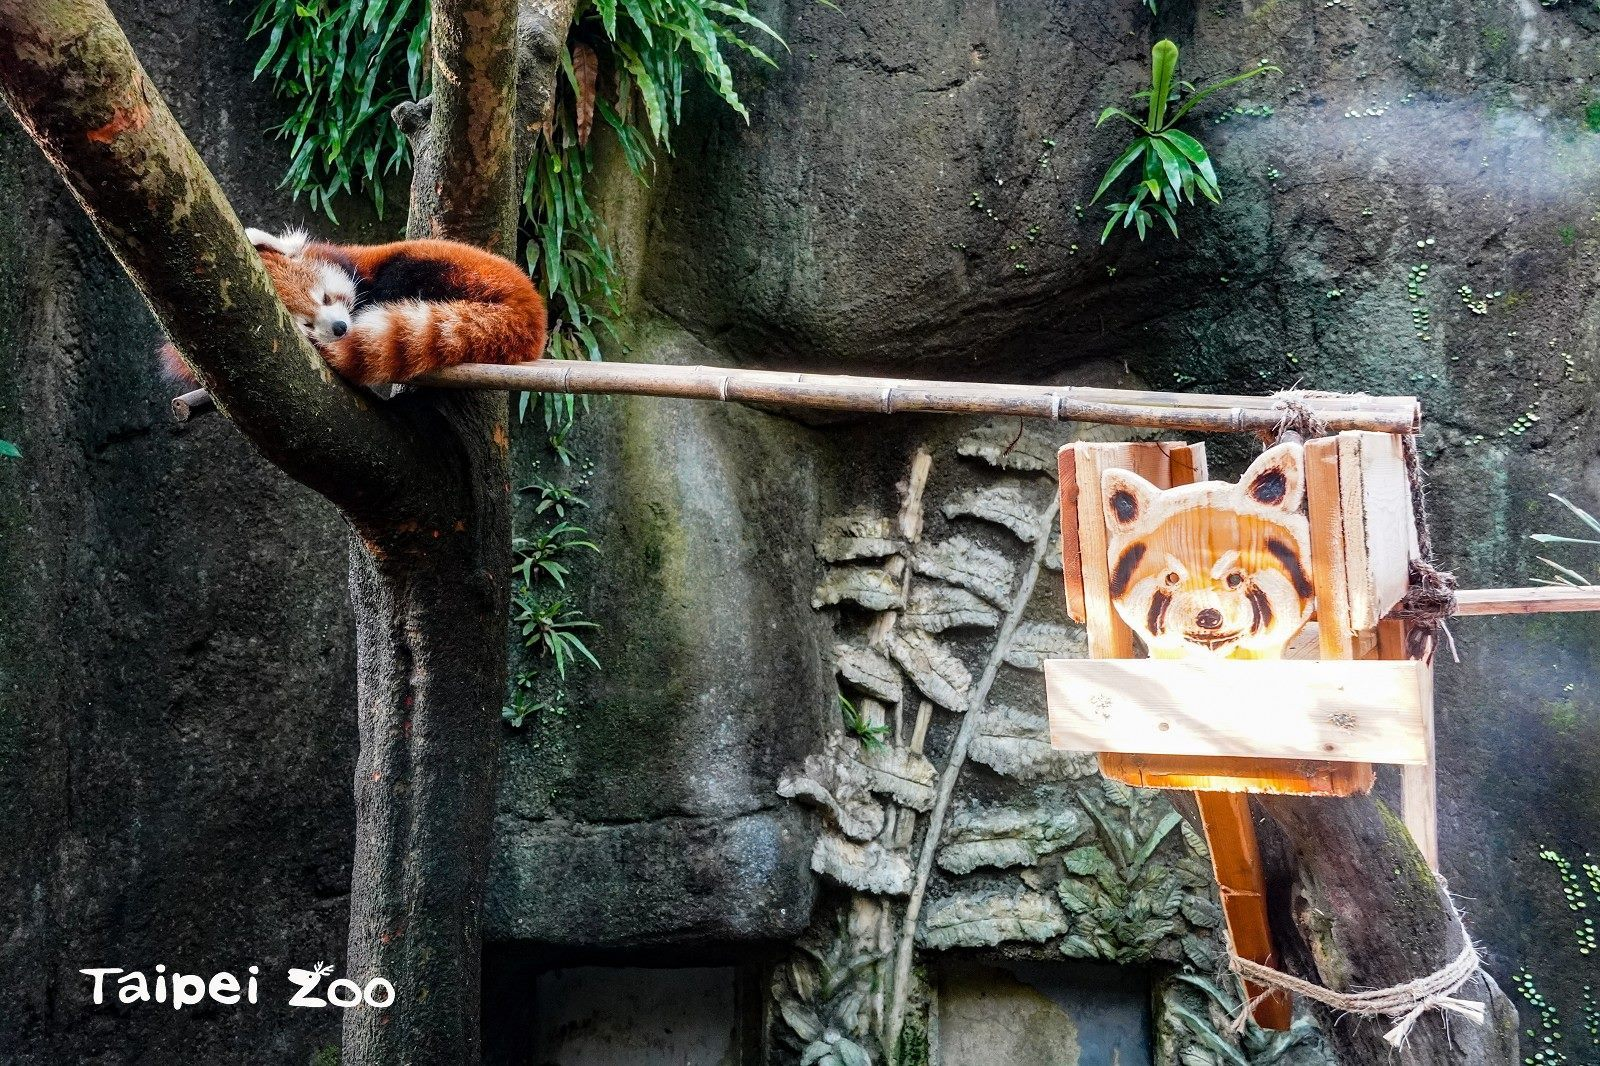 Red Panda with the new furniture at Taipei Zoo